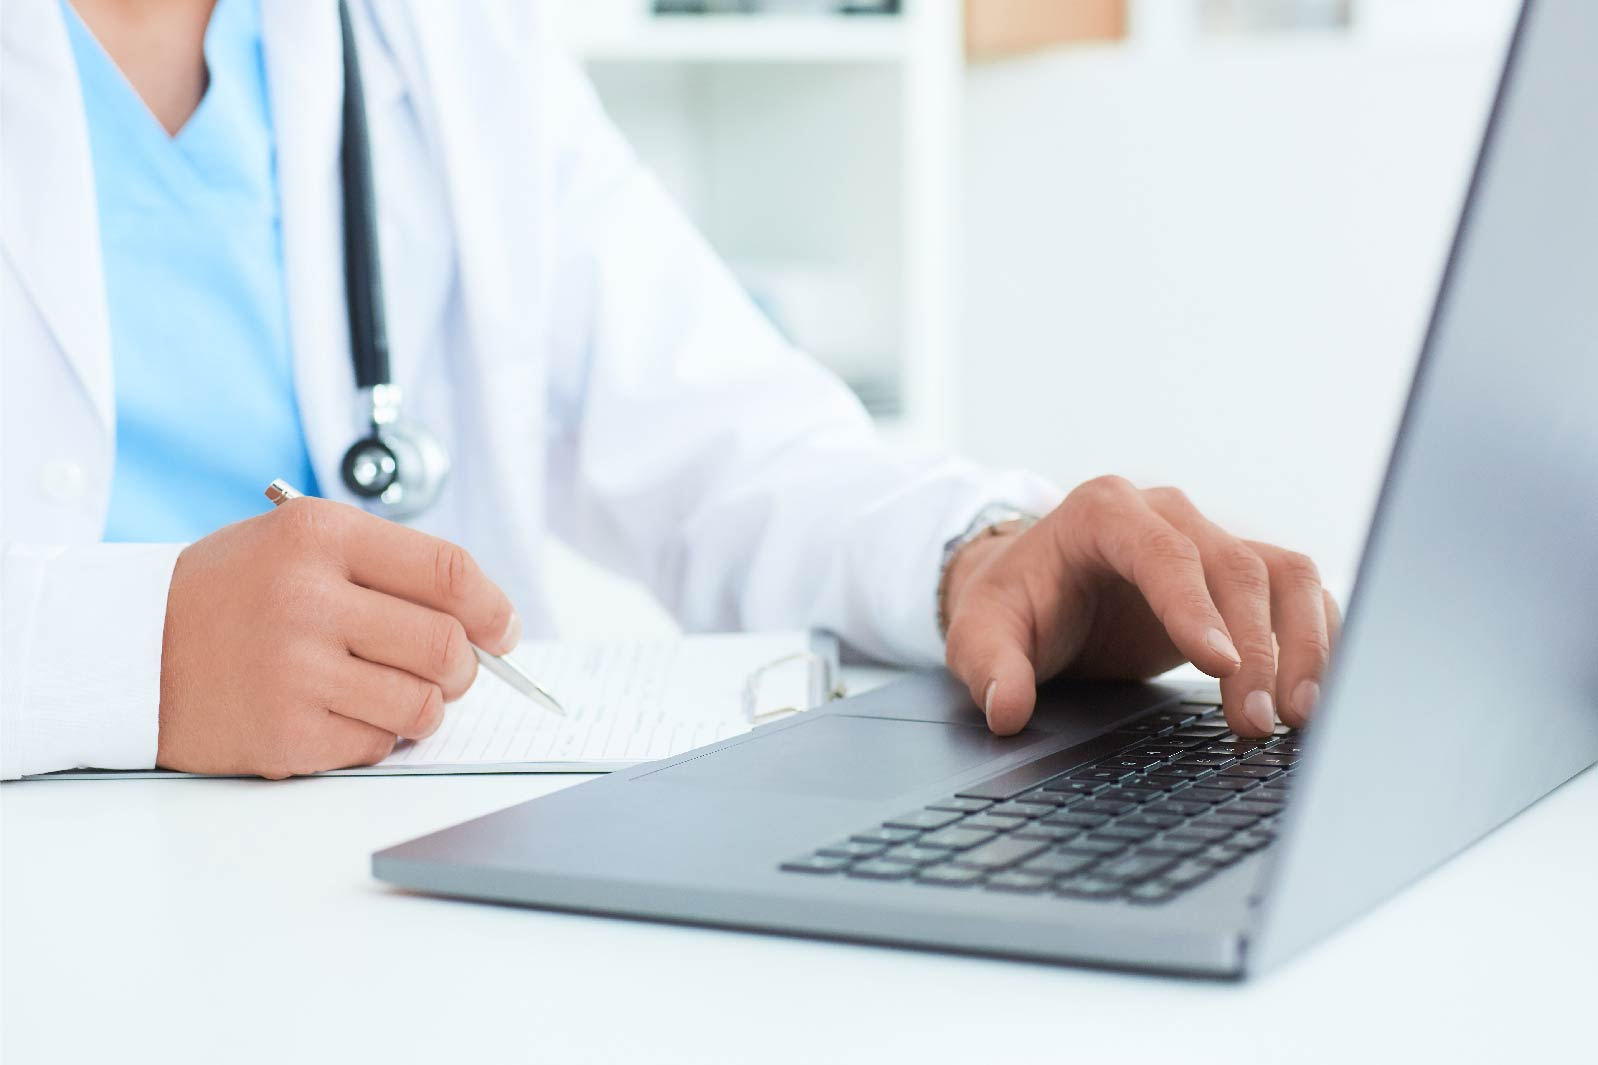 Things to consider when building HIPAA-compliant applications